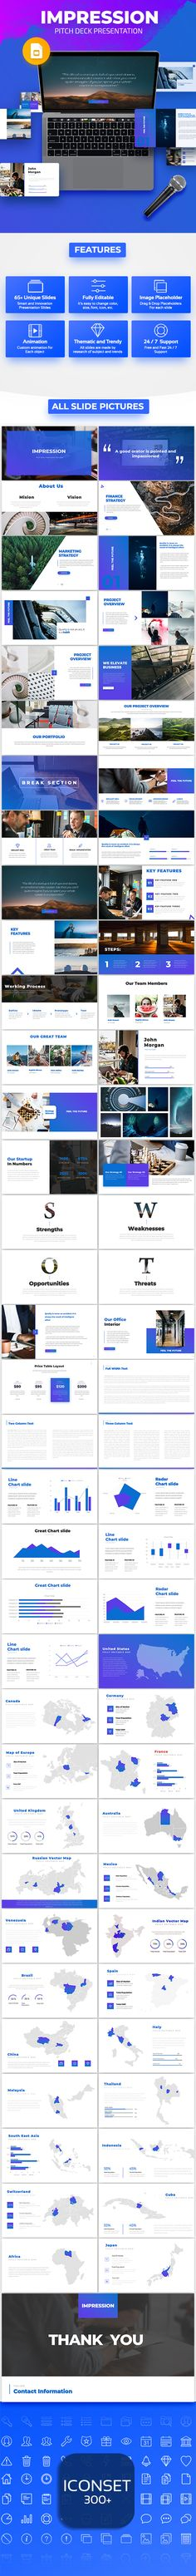 855 best Powerpoint Template images on Pinterest | Keynote template ...